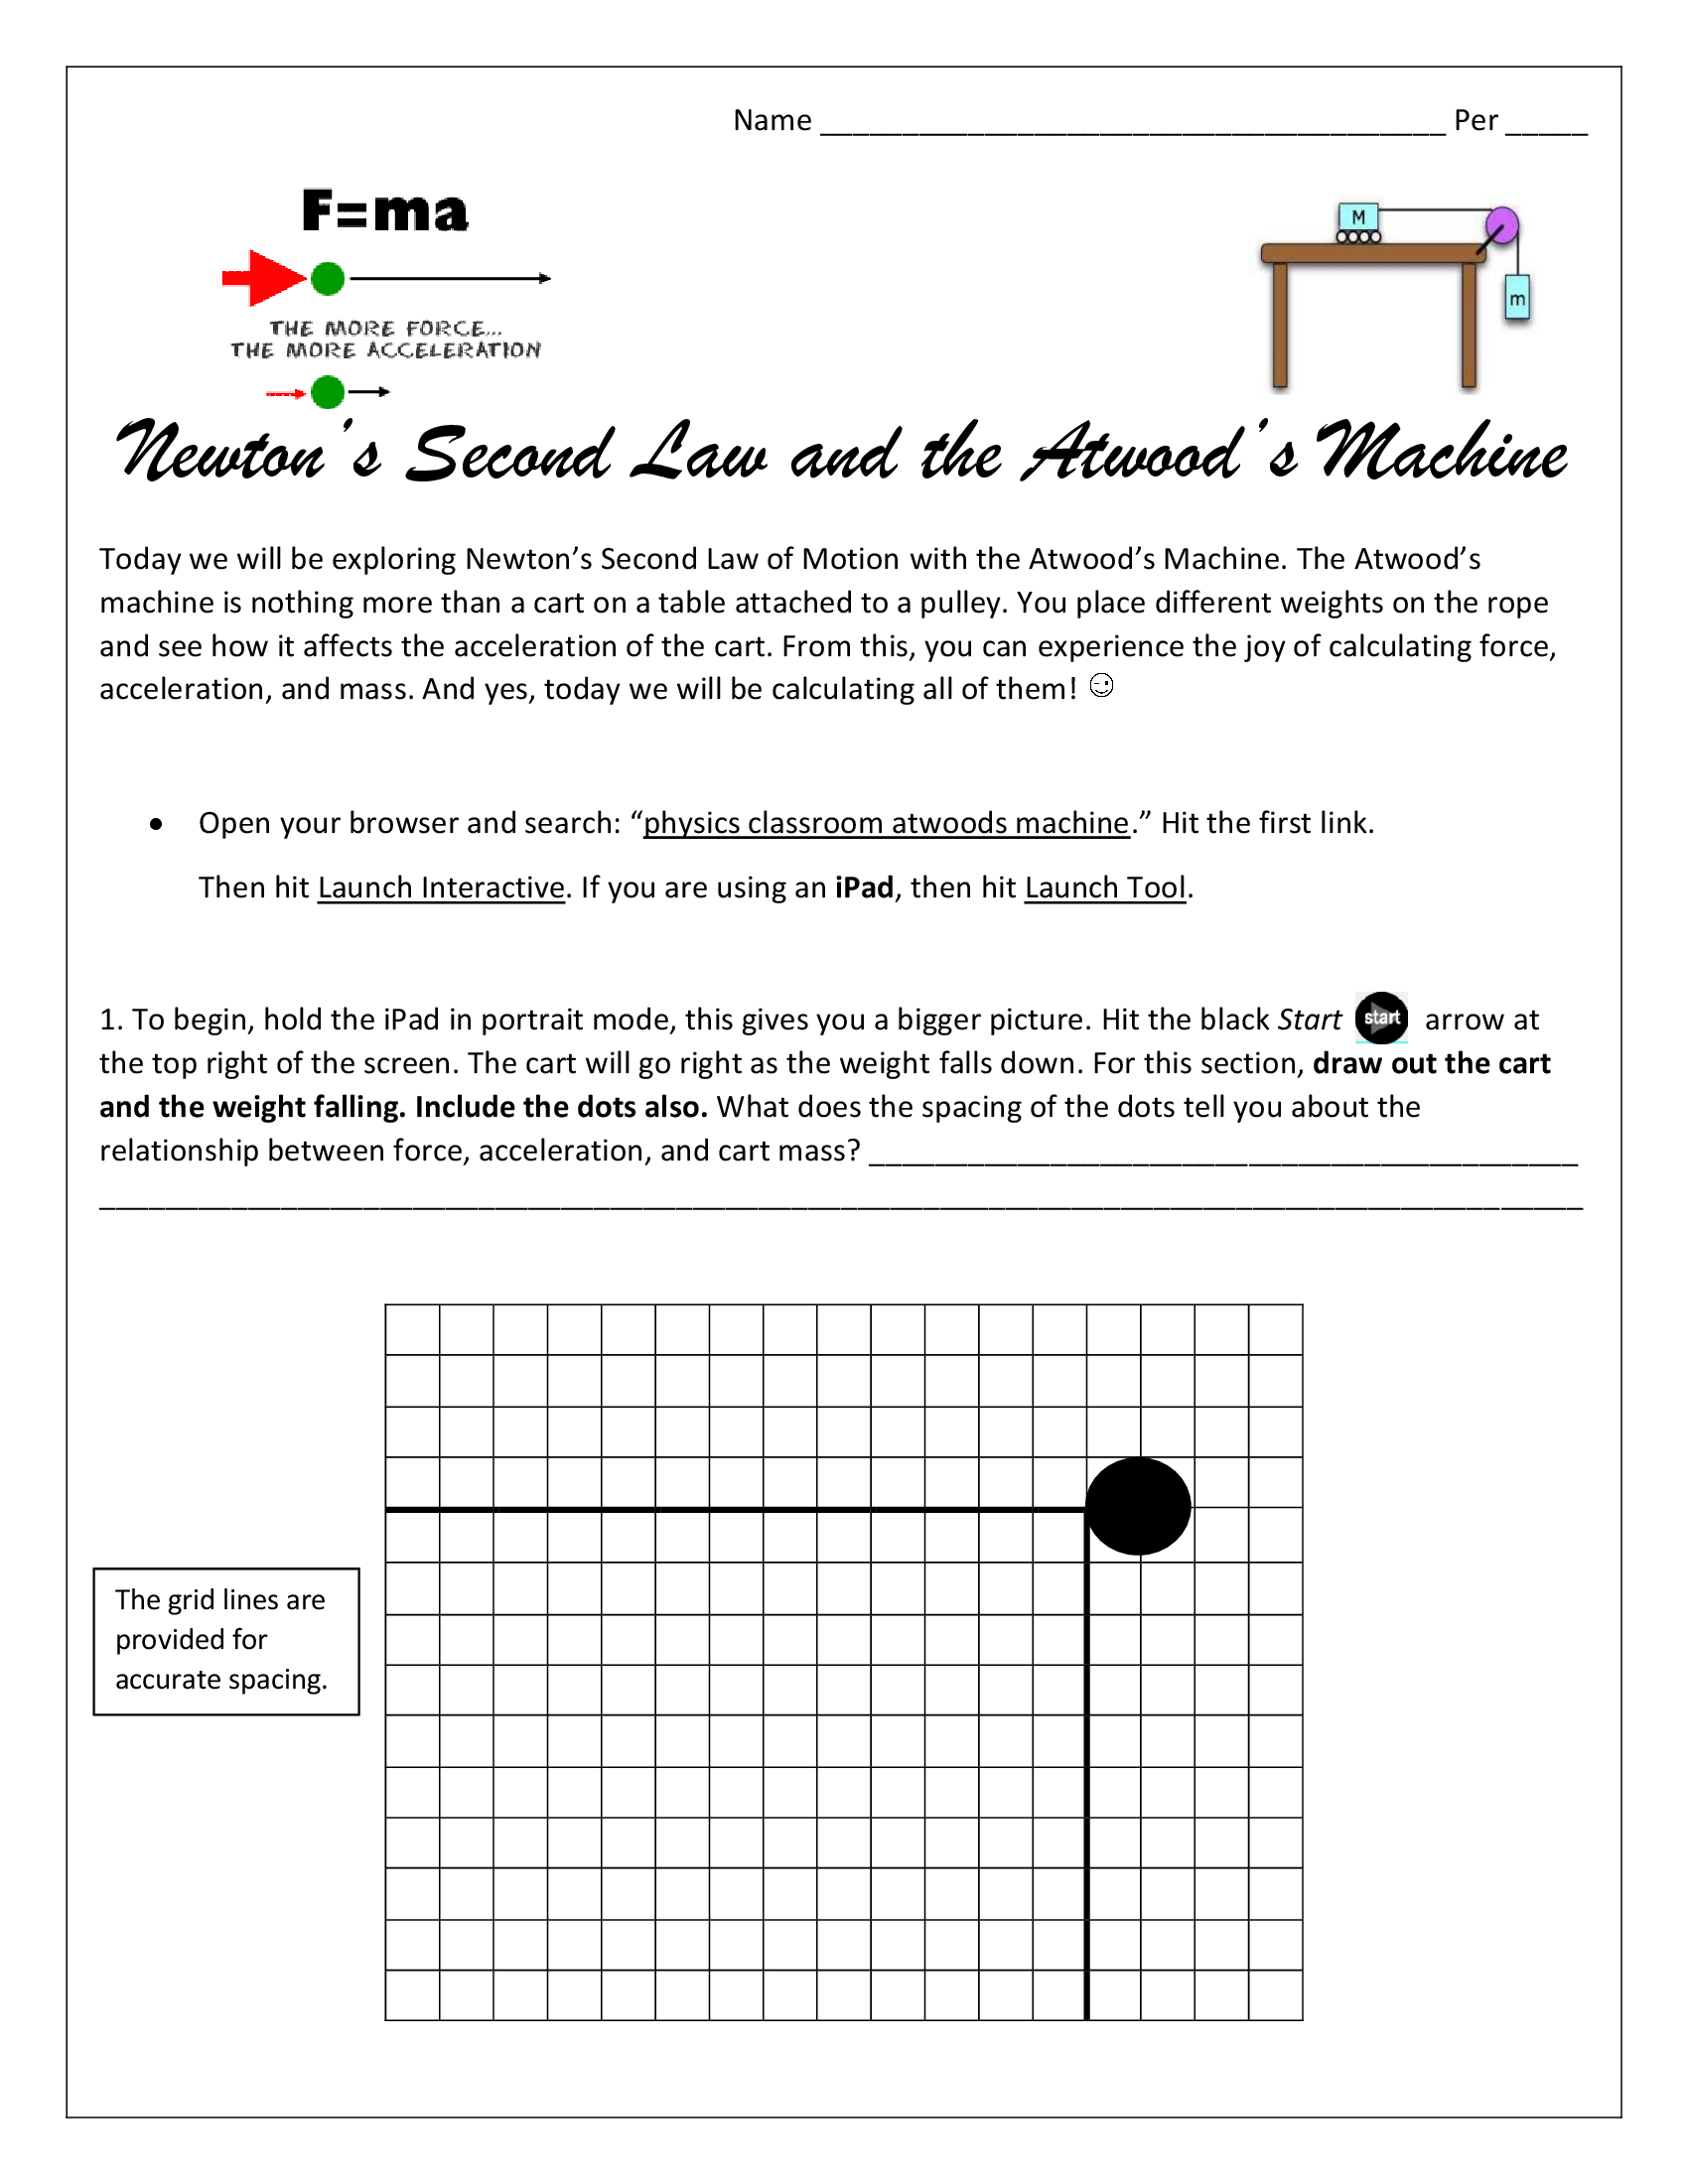 The Atwood S Machine And Newton S Second Law Of Motion